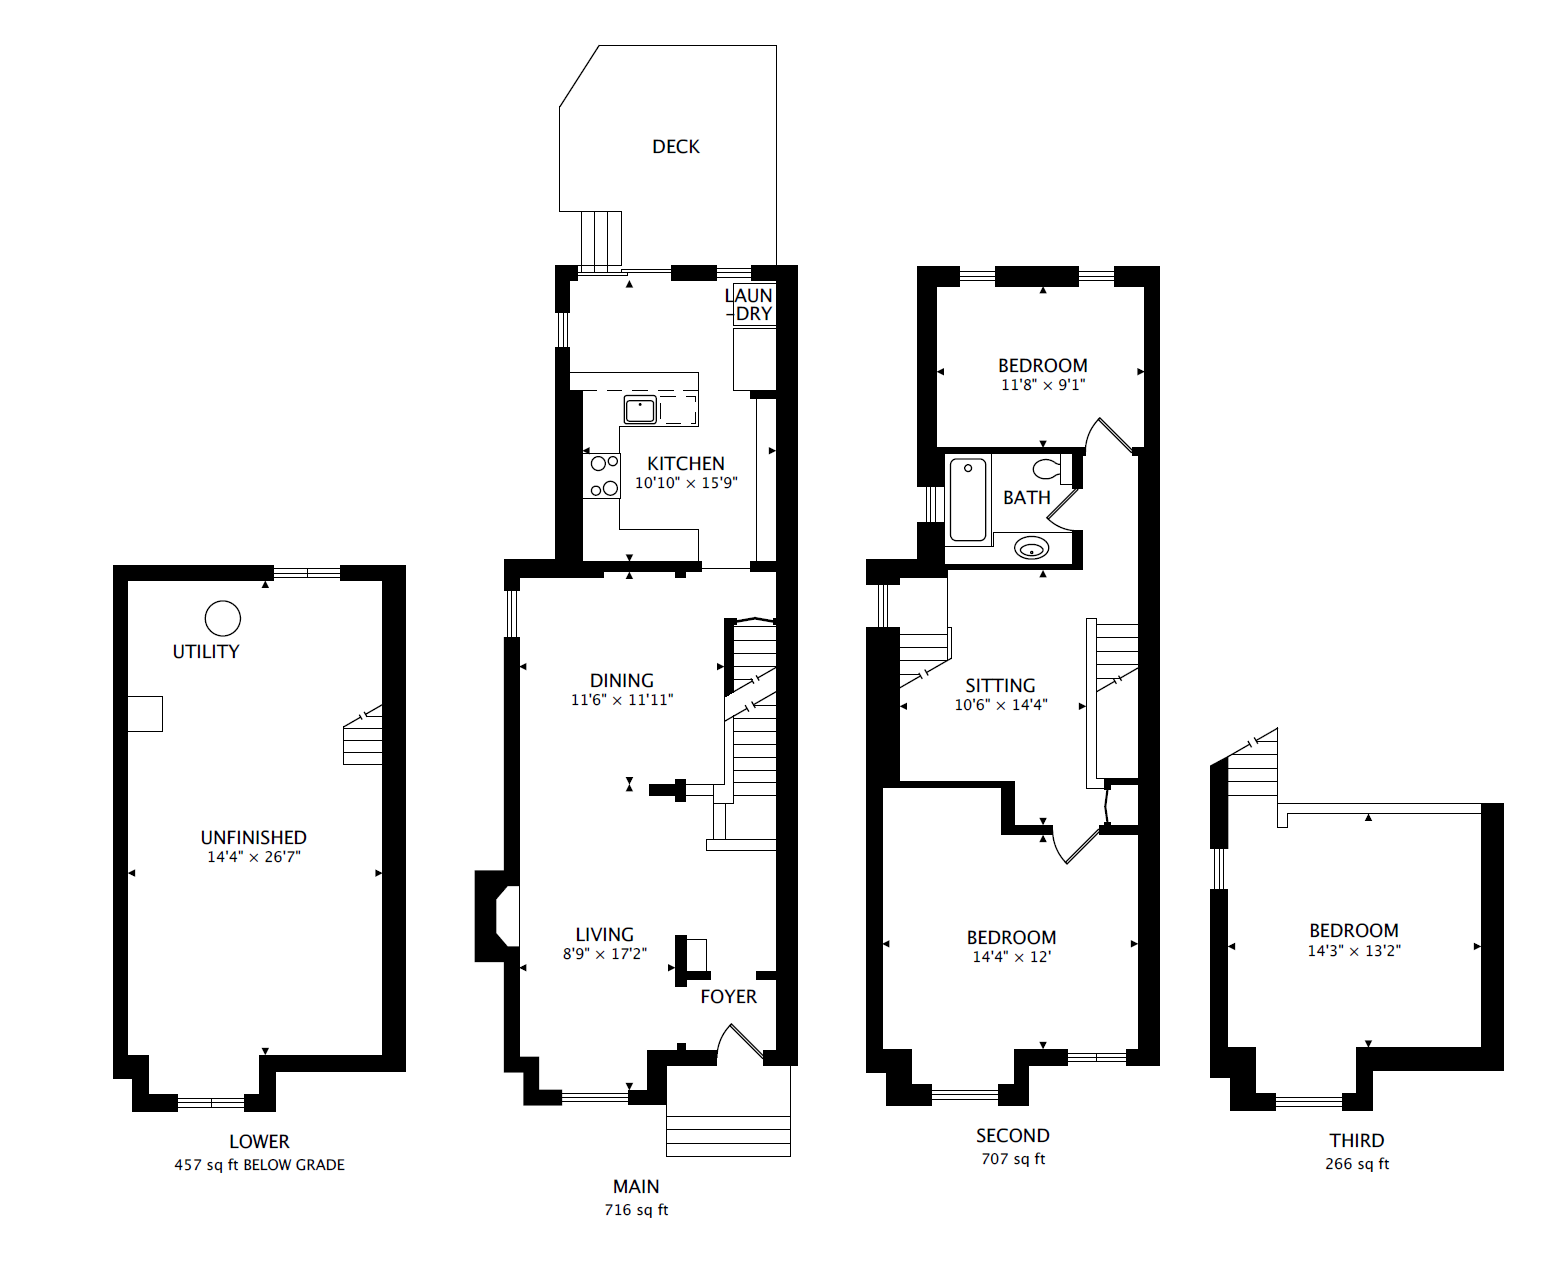 92 Sumach St - Floorplan - Wide